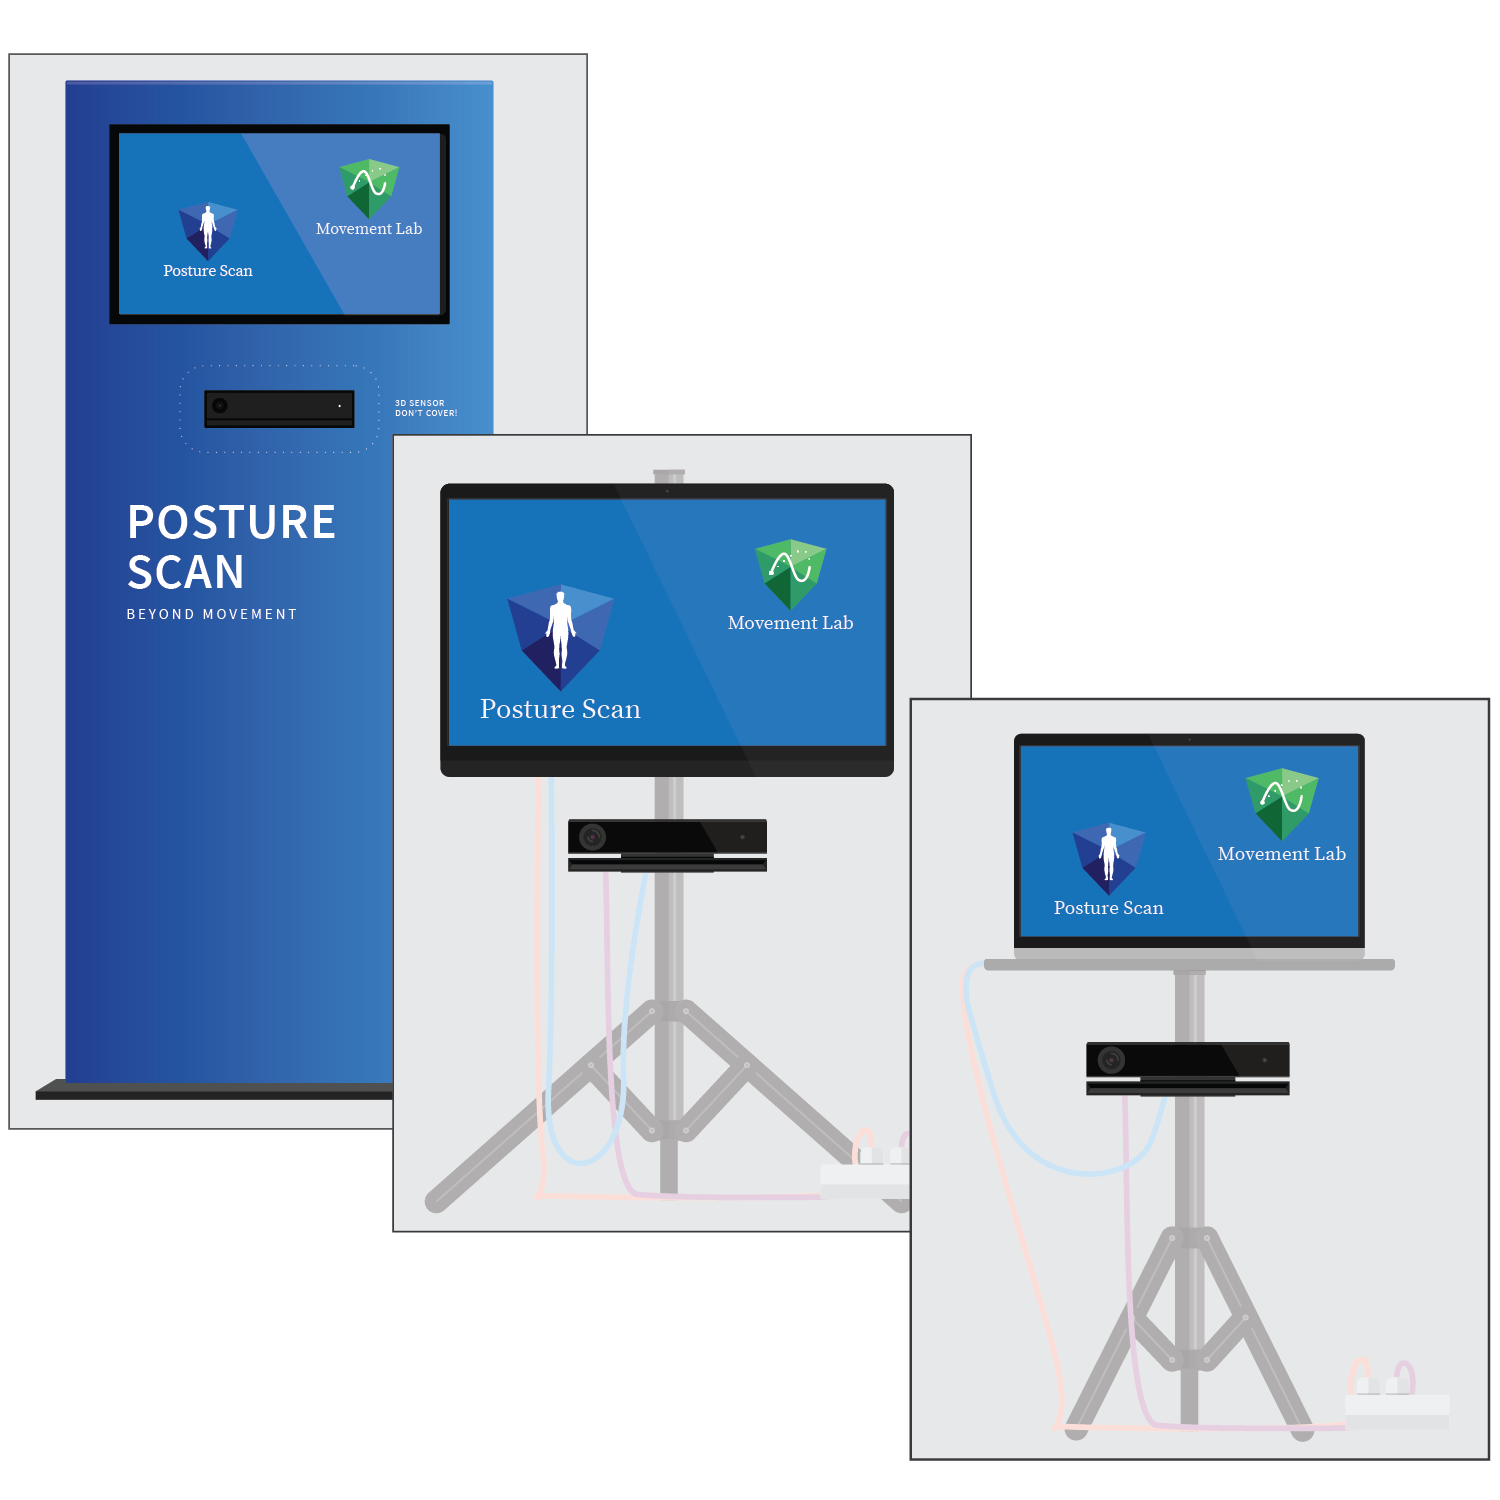 Service touch points